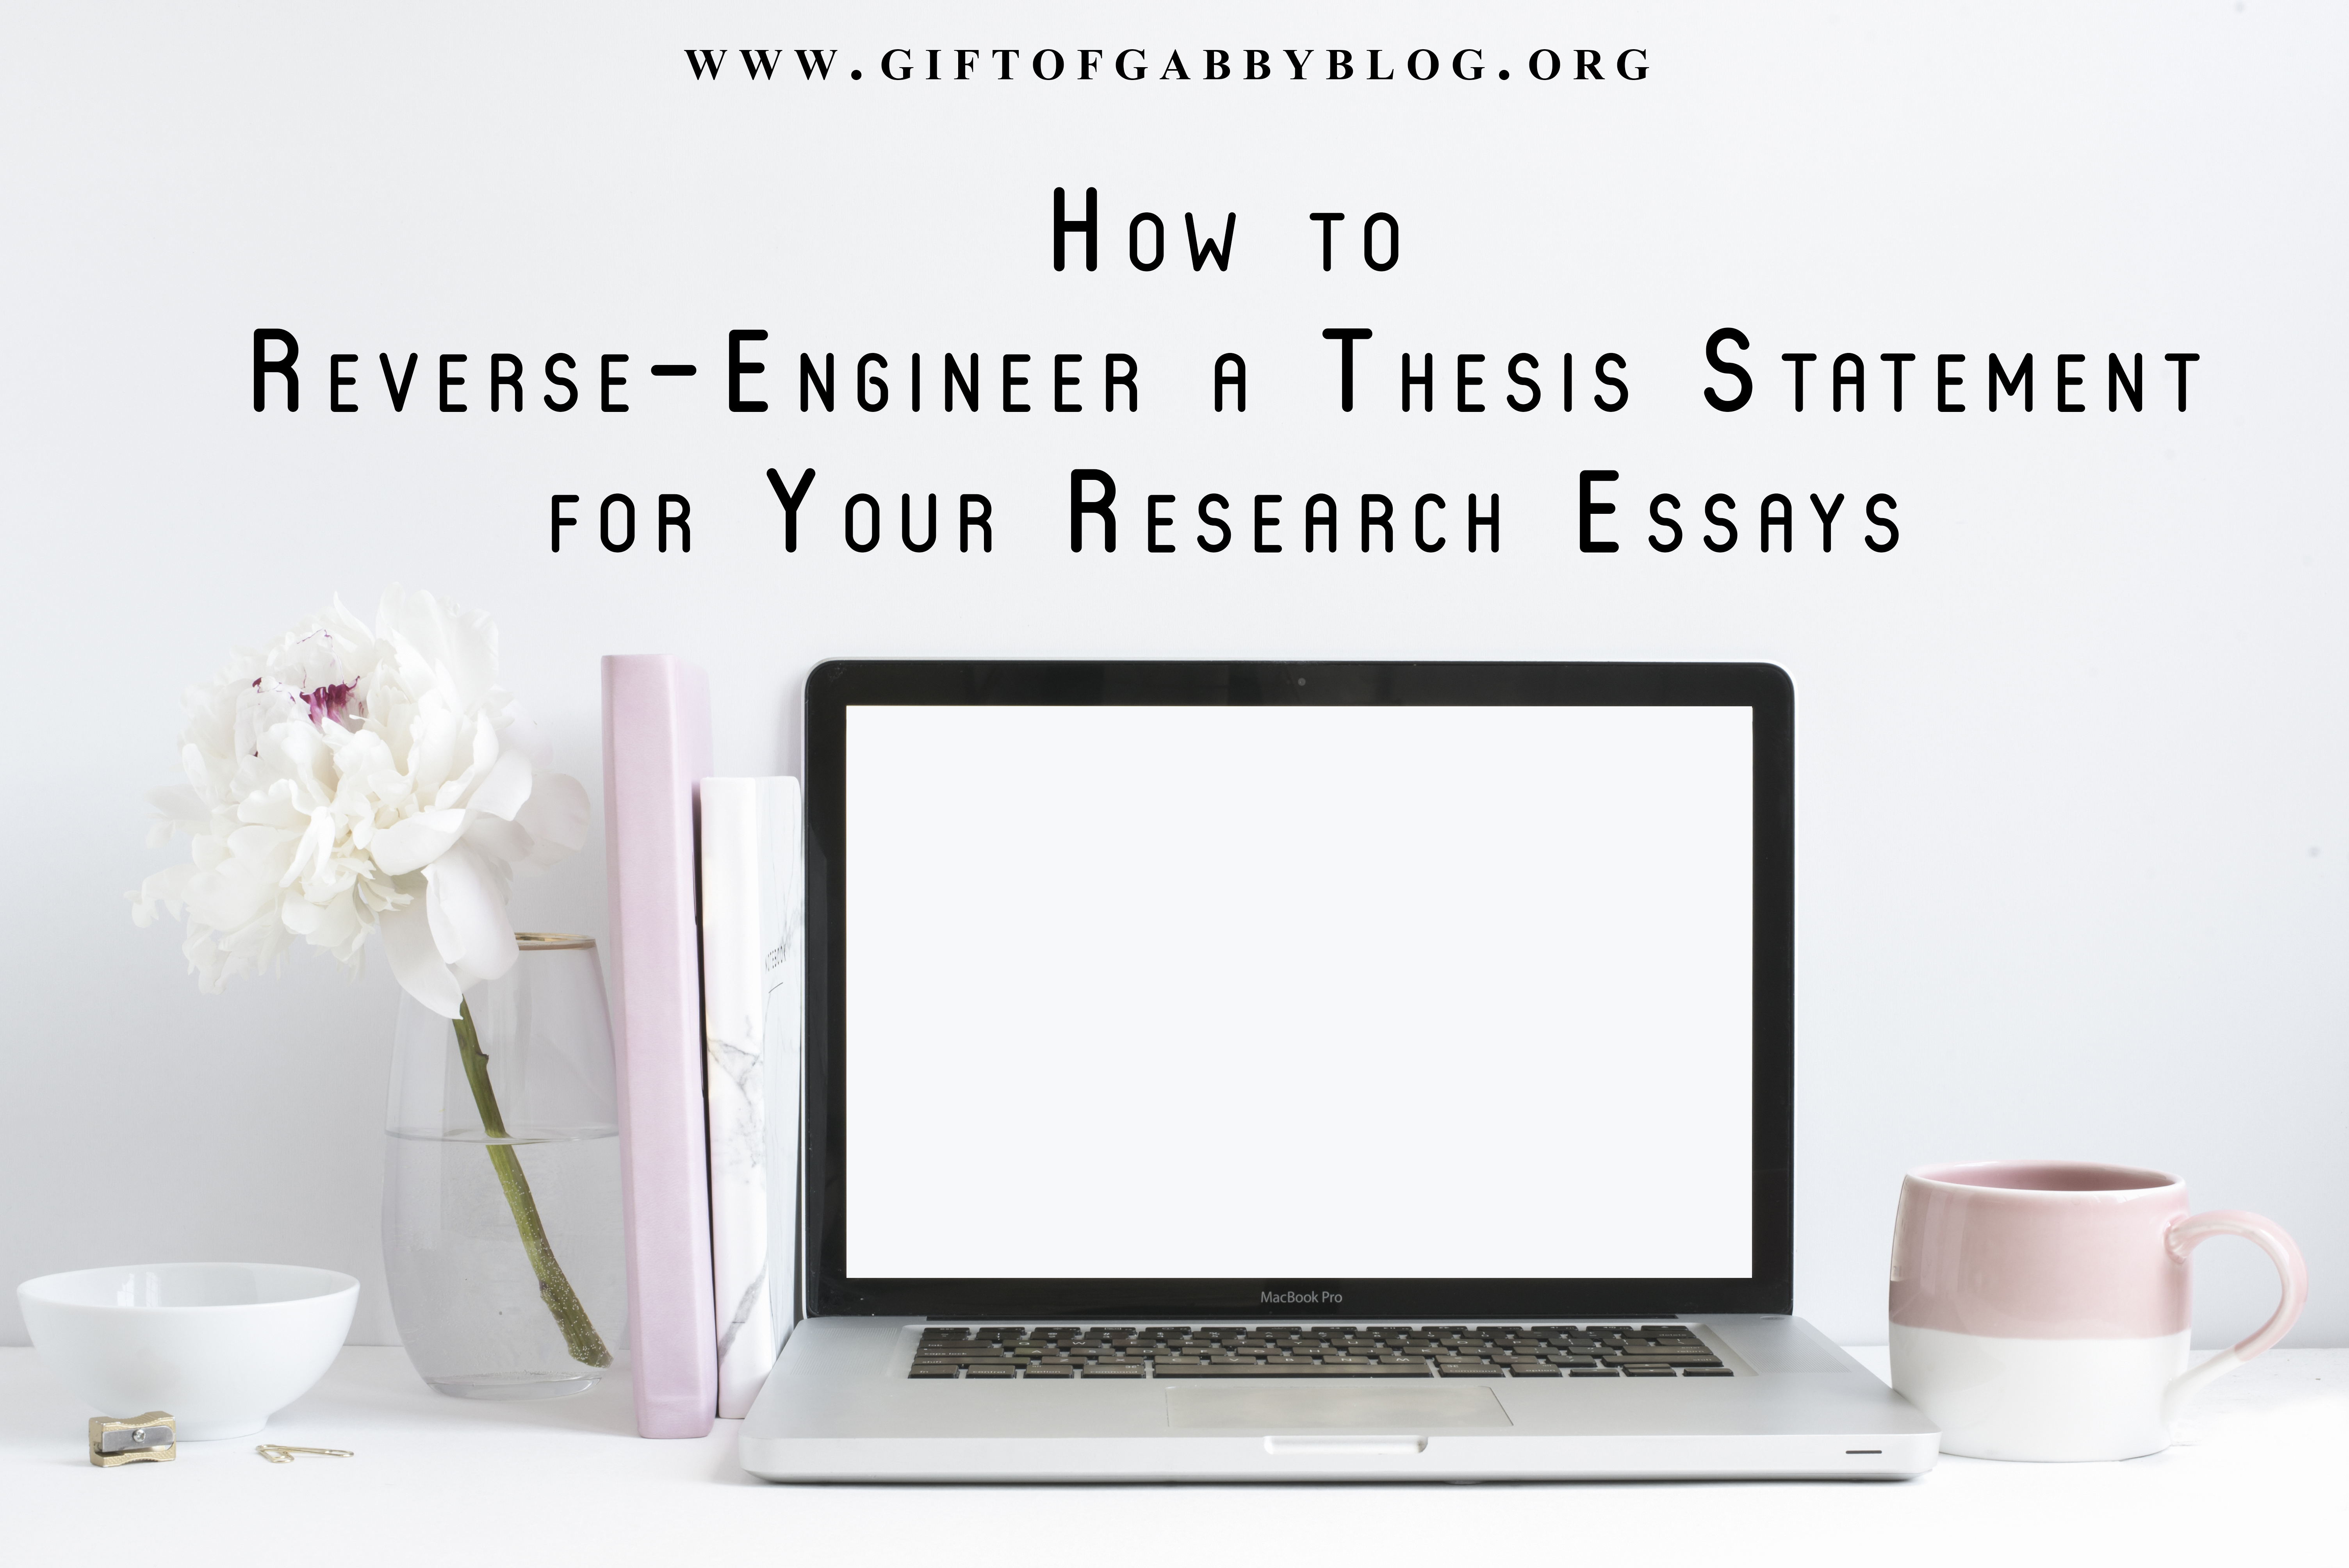 _giftofgabby_2017_How-To-Reverse-Engineer-A-Thesis-Statement-For-Your-Research-Essays